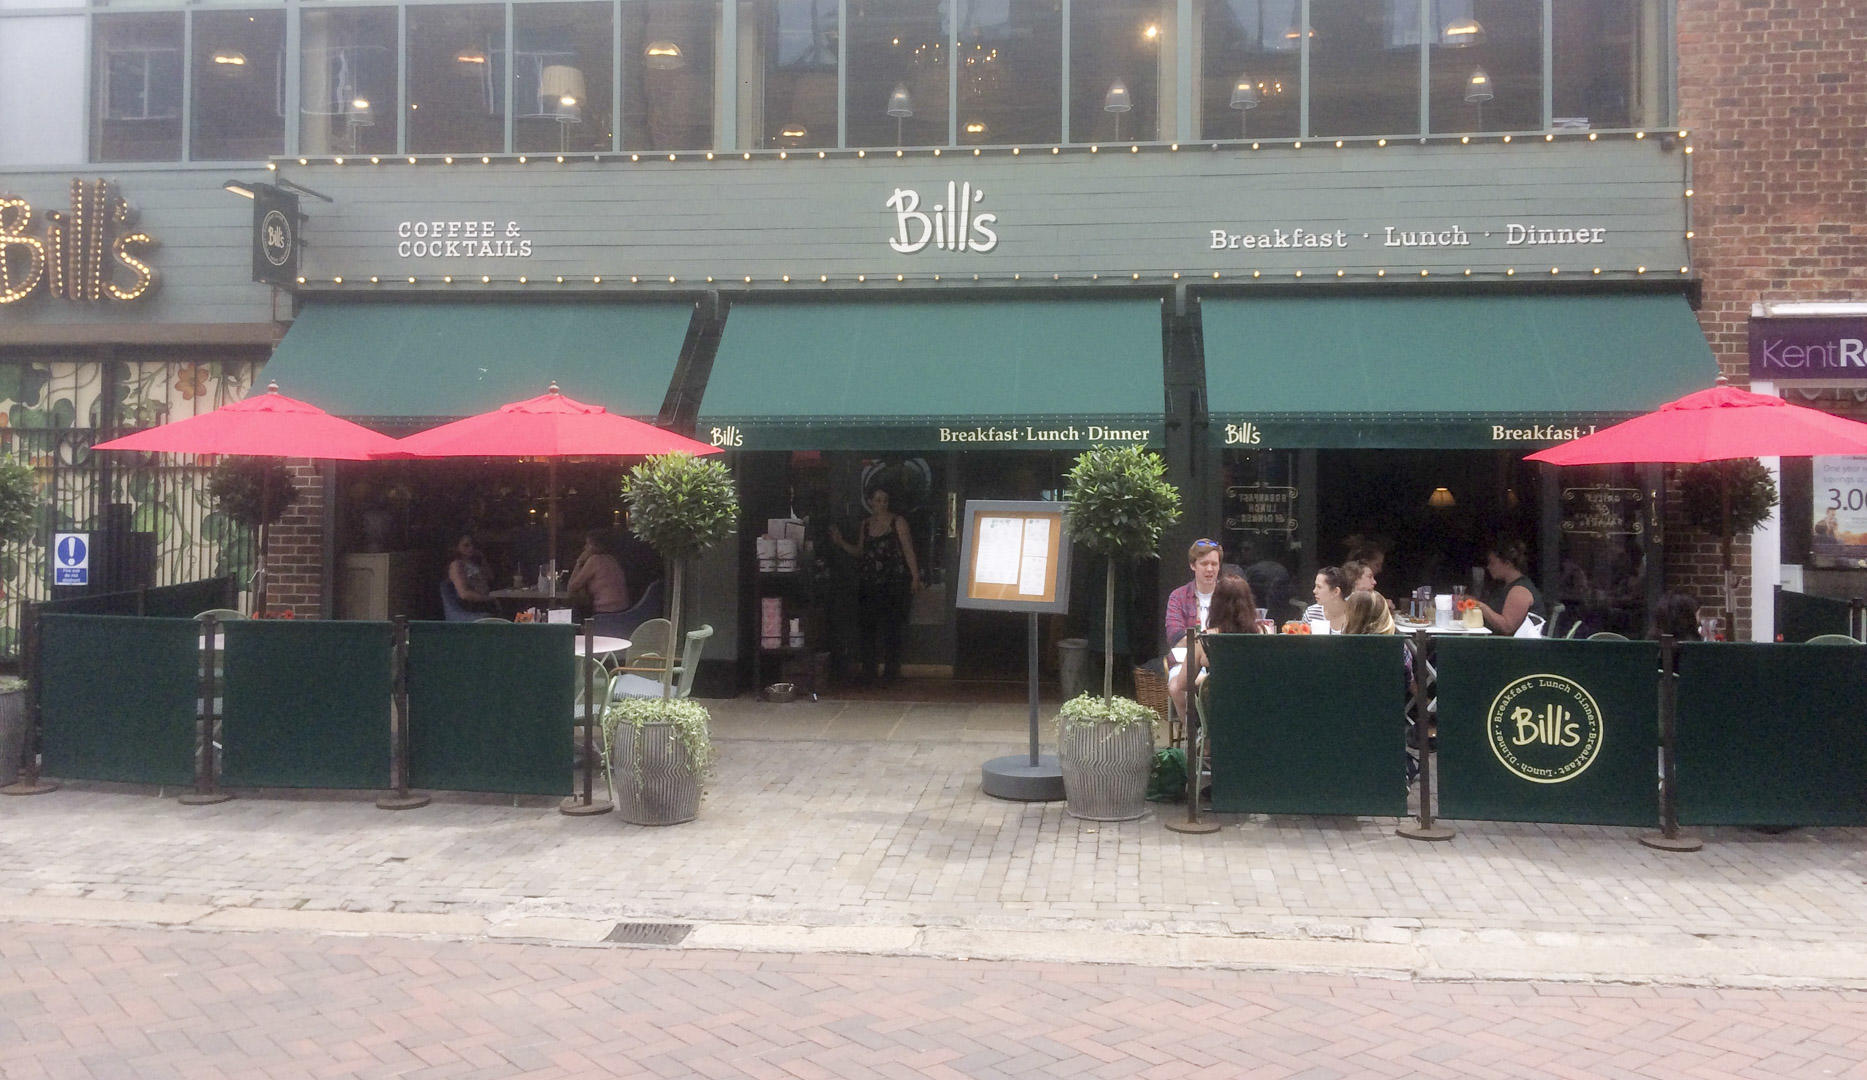 Outside Bill's restaurant in Canterbury.